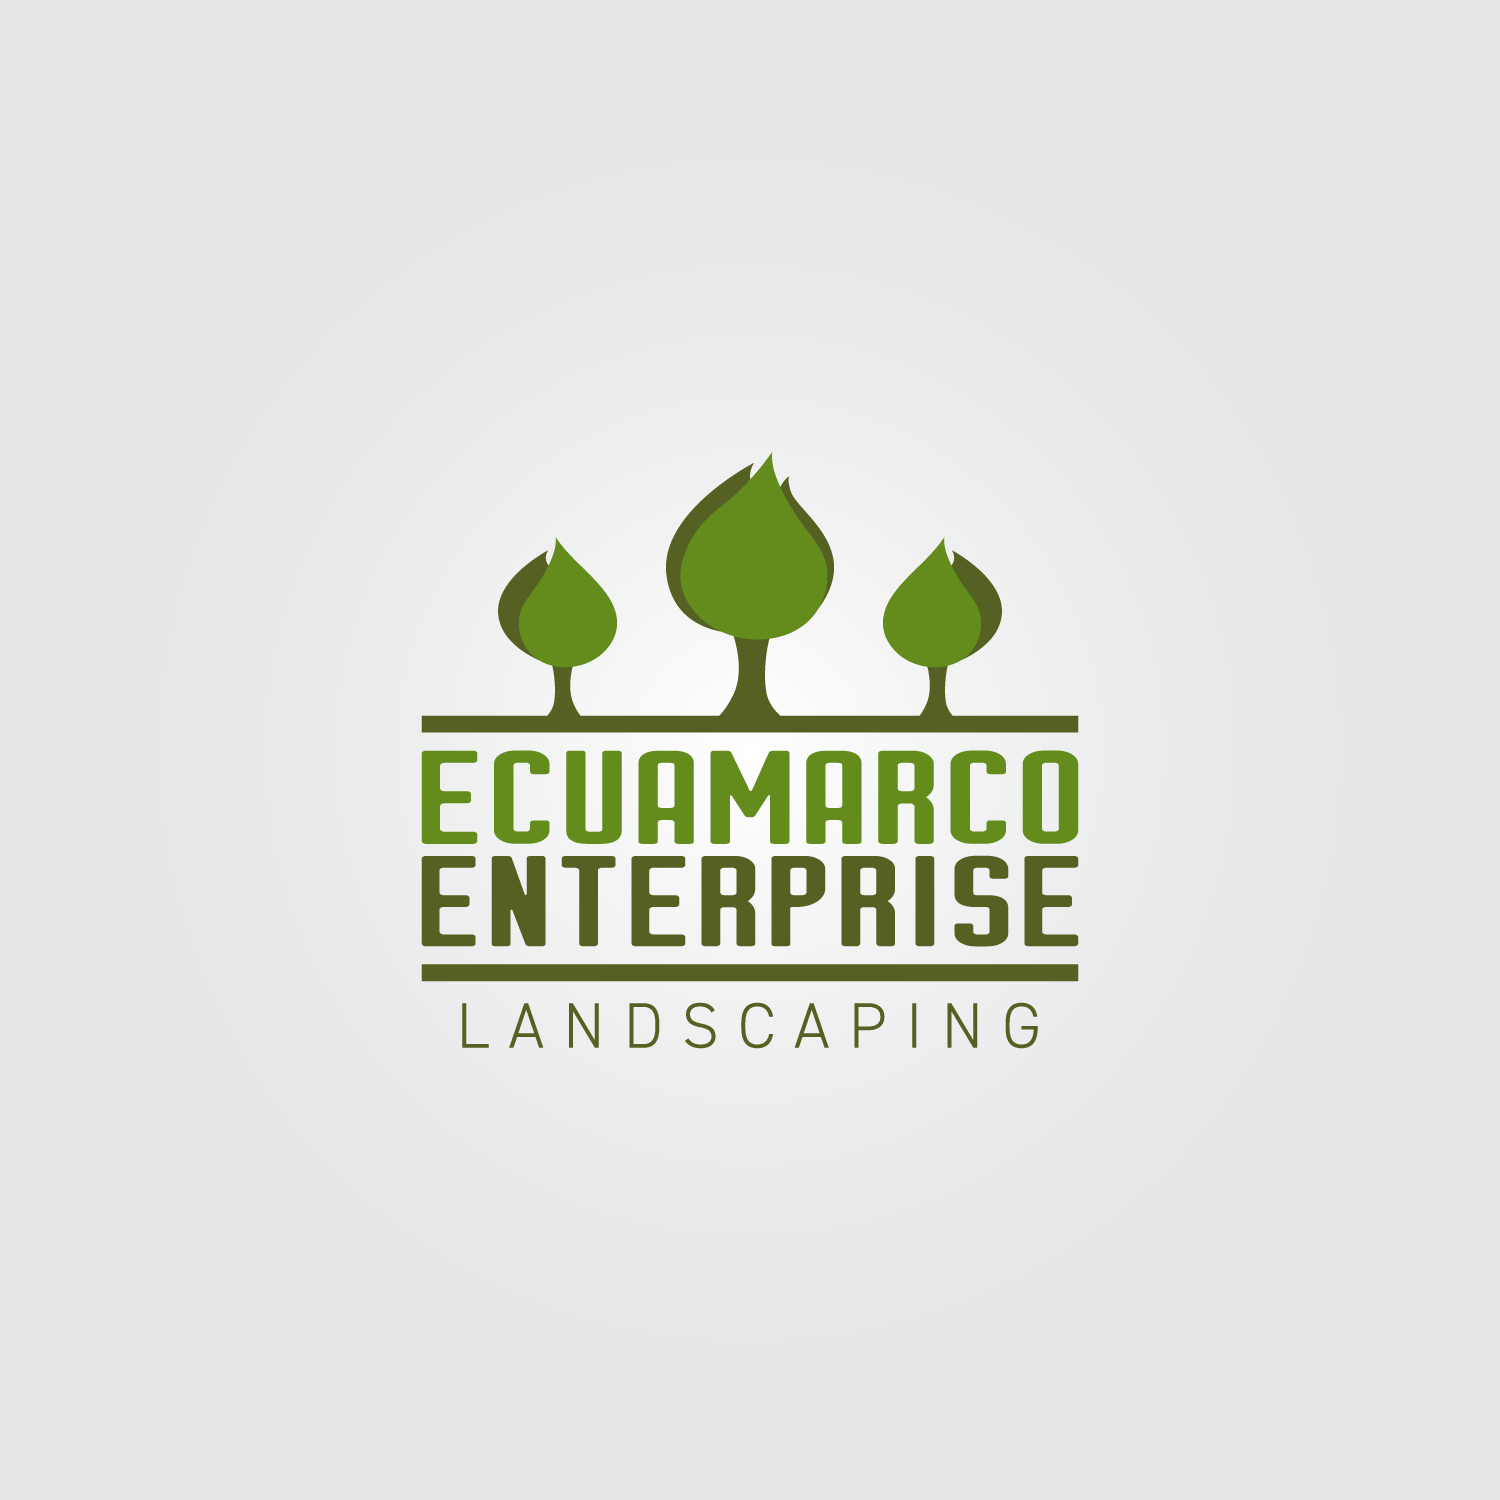 a landscaping business logo